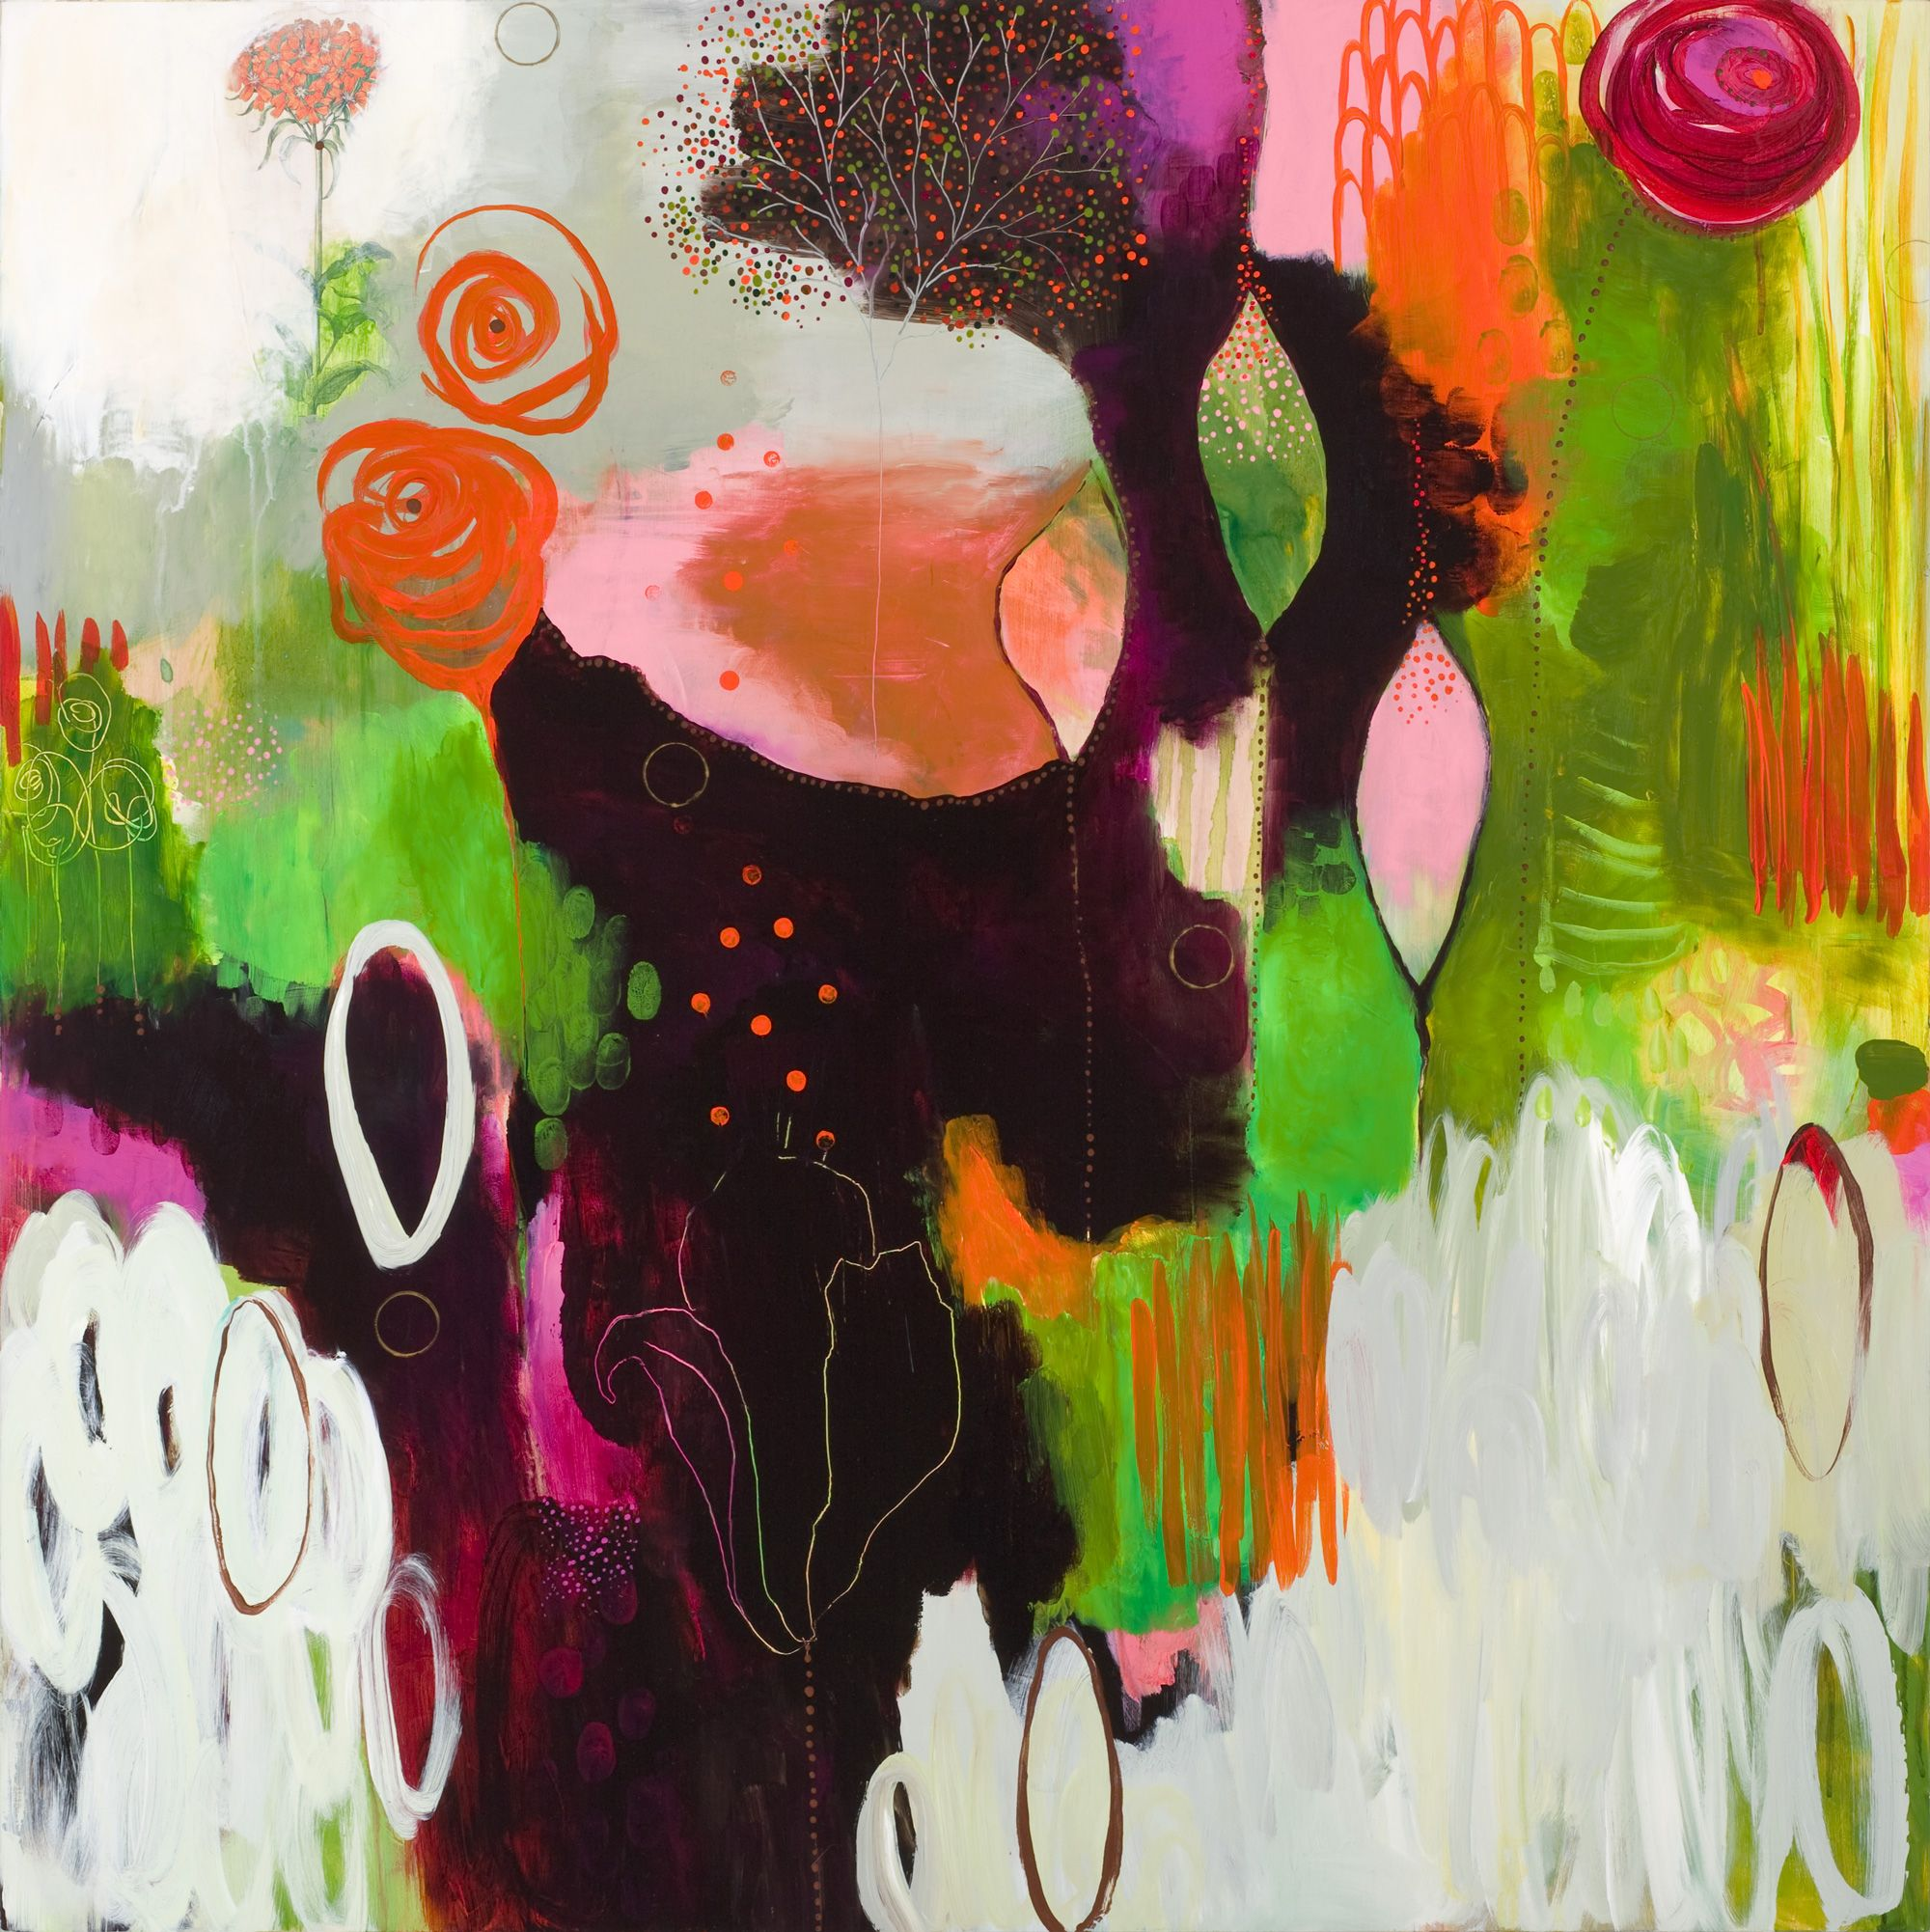 New Brave Intuitive Painting By Flora Bowley Created During Her